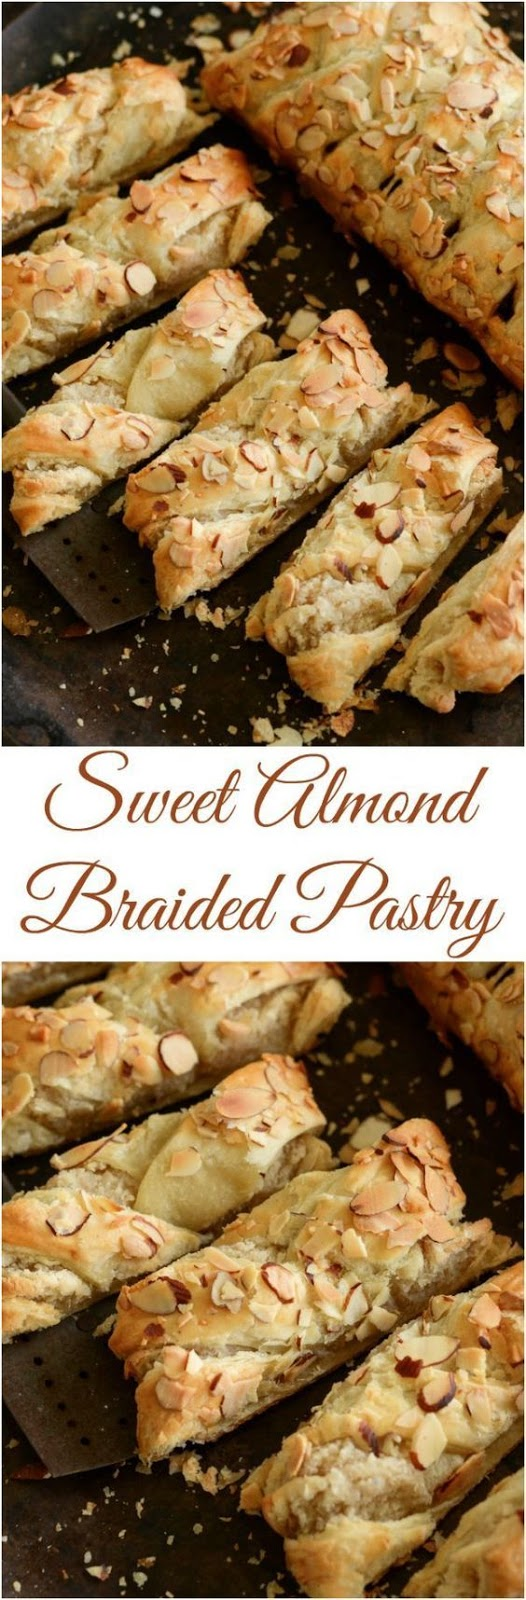 Sweet Almond Braided Pastry